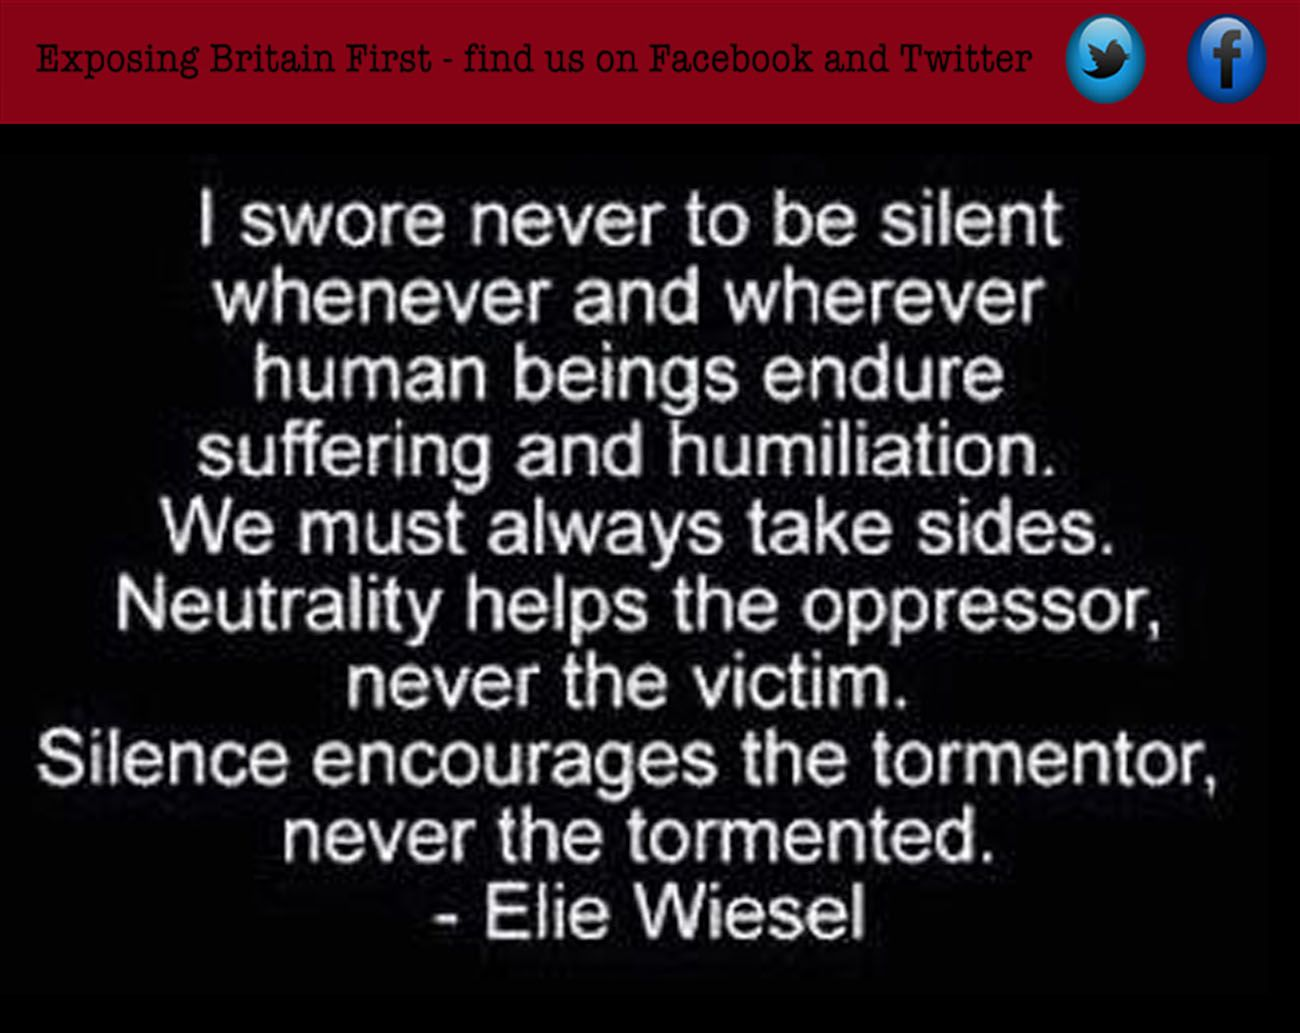 Holocaust Survivor Quotes If You Choose Silence You Are On The Side Of The Oppressor  Share